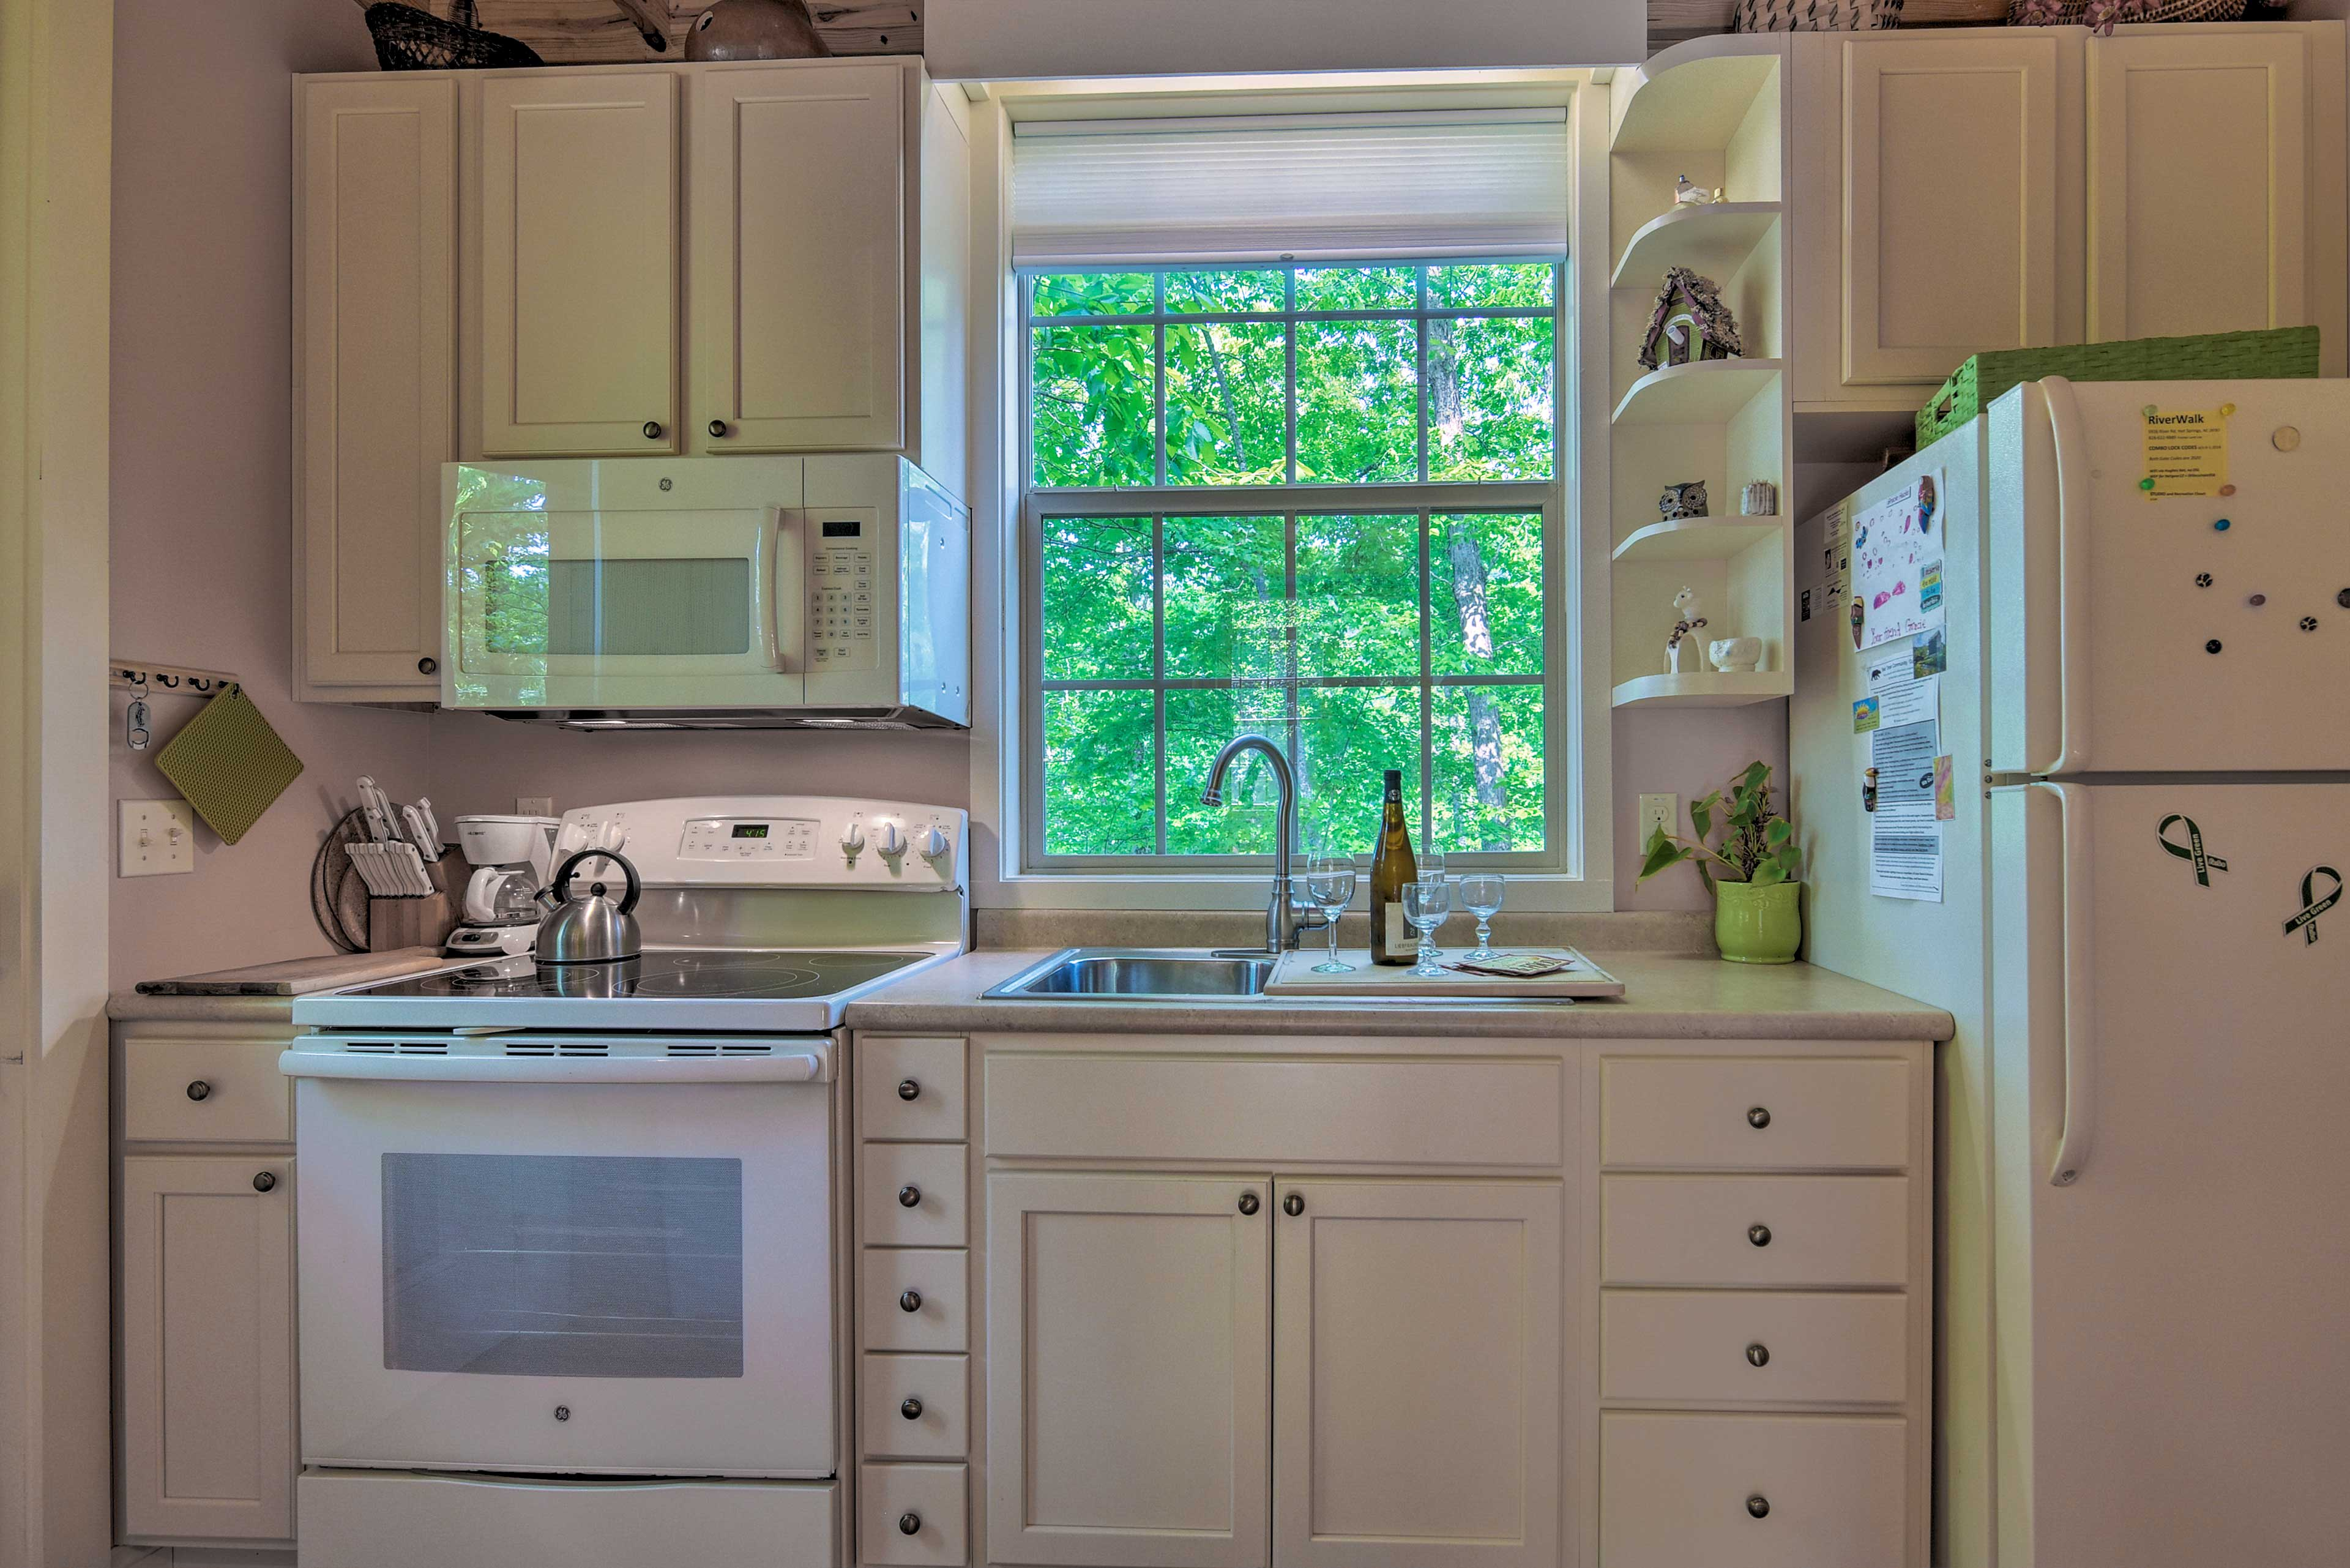 Keep the cooking simple in this well-equipped galley kitchen.